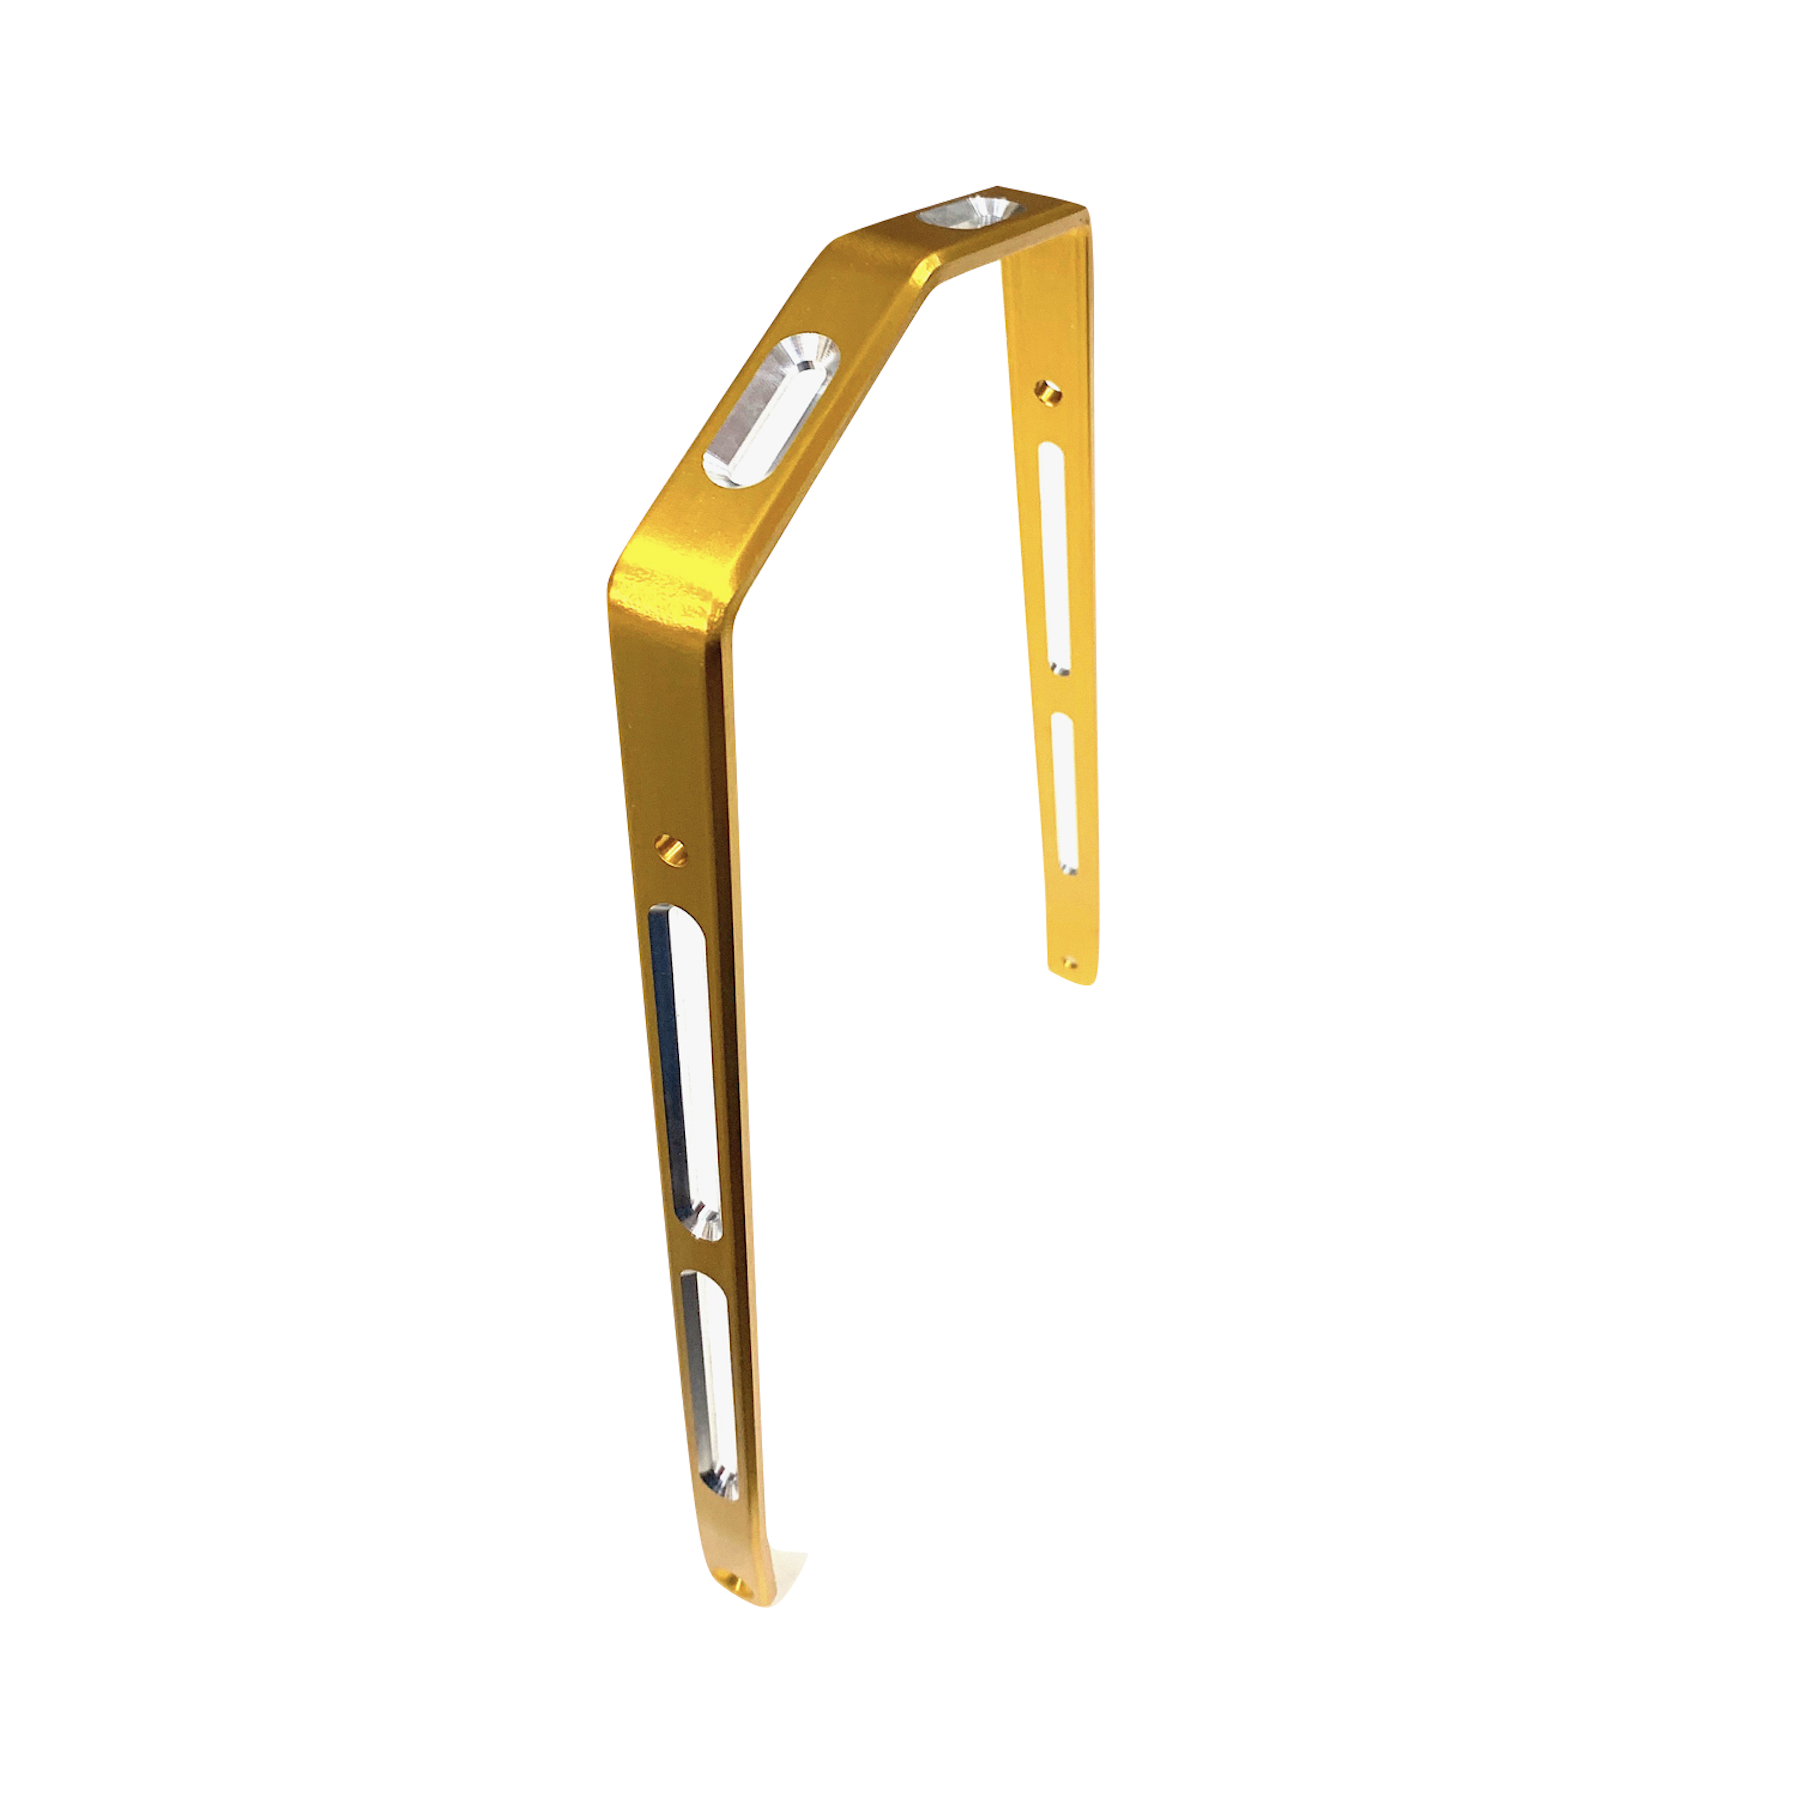 JHI PUSH BAR - GOLD